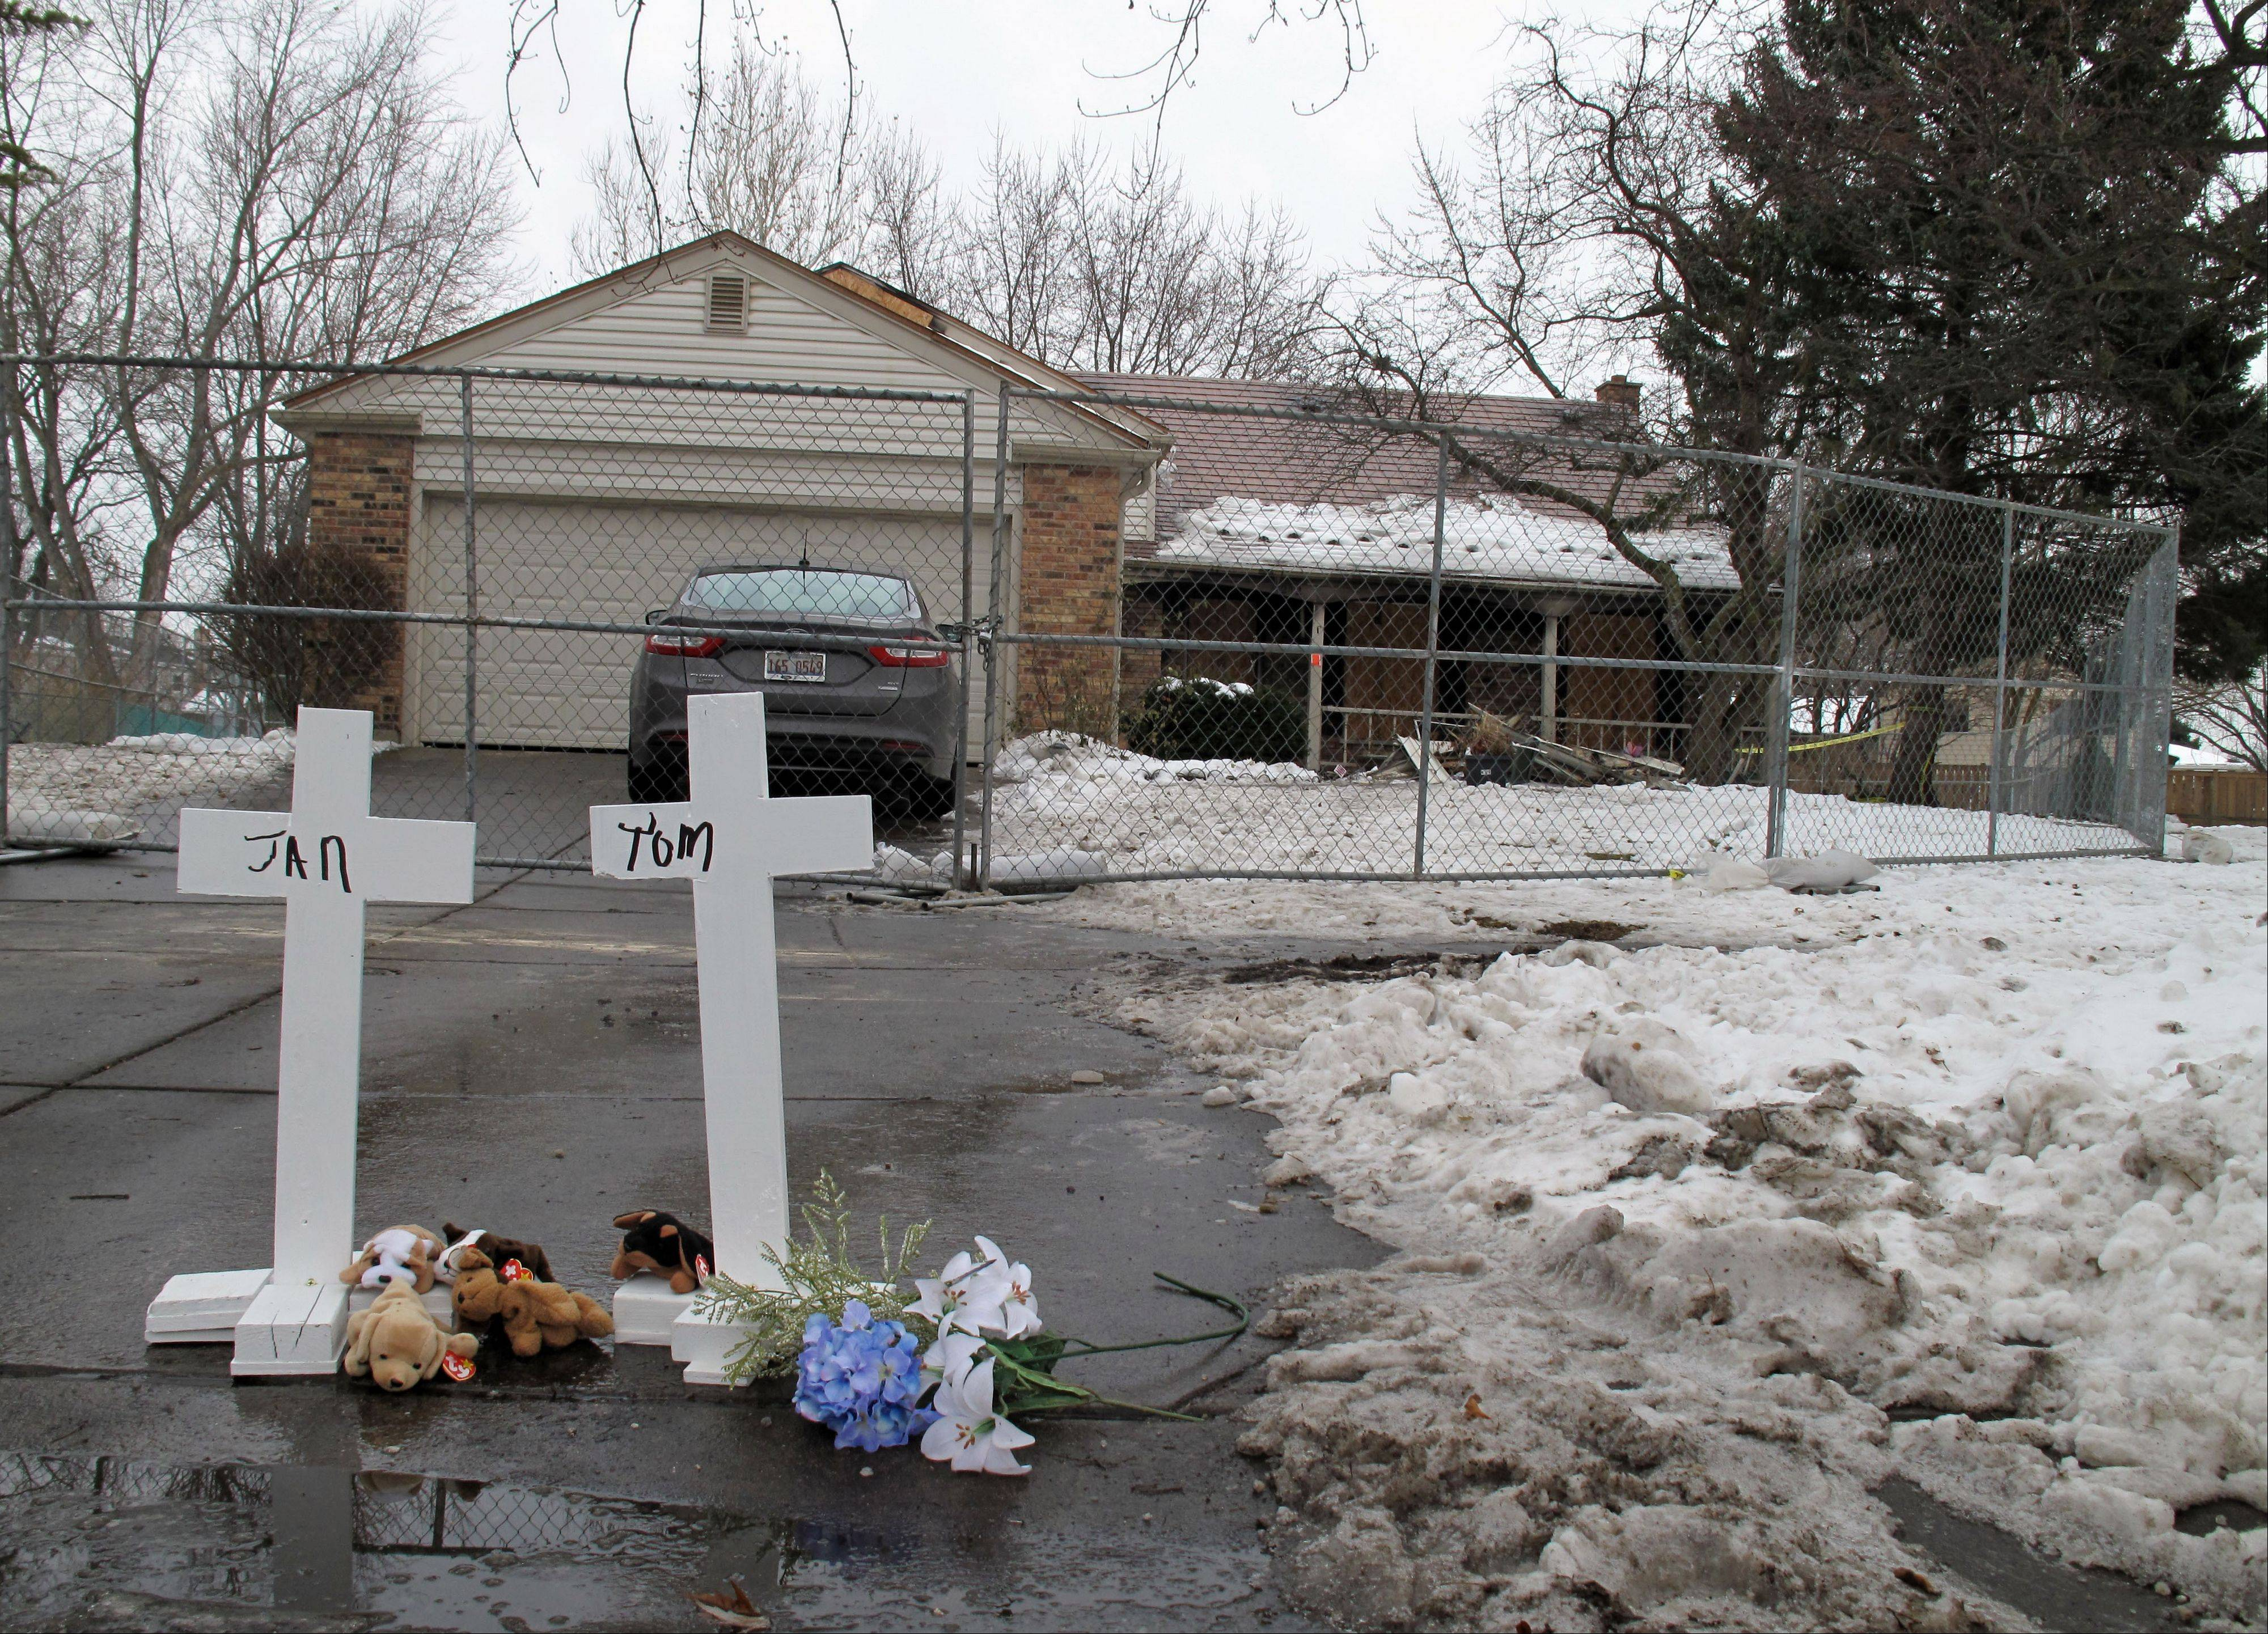 Naperville fire victims remembered as 'gentle' couple